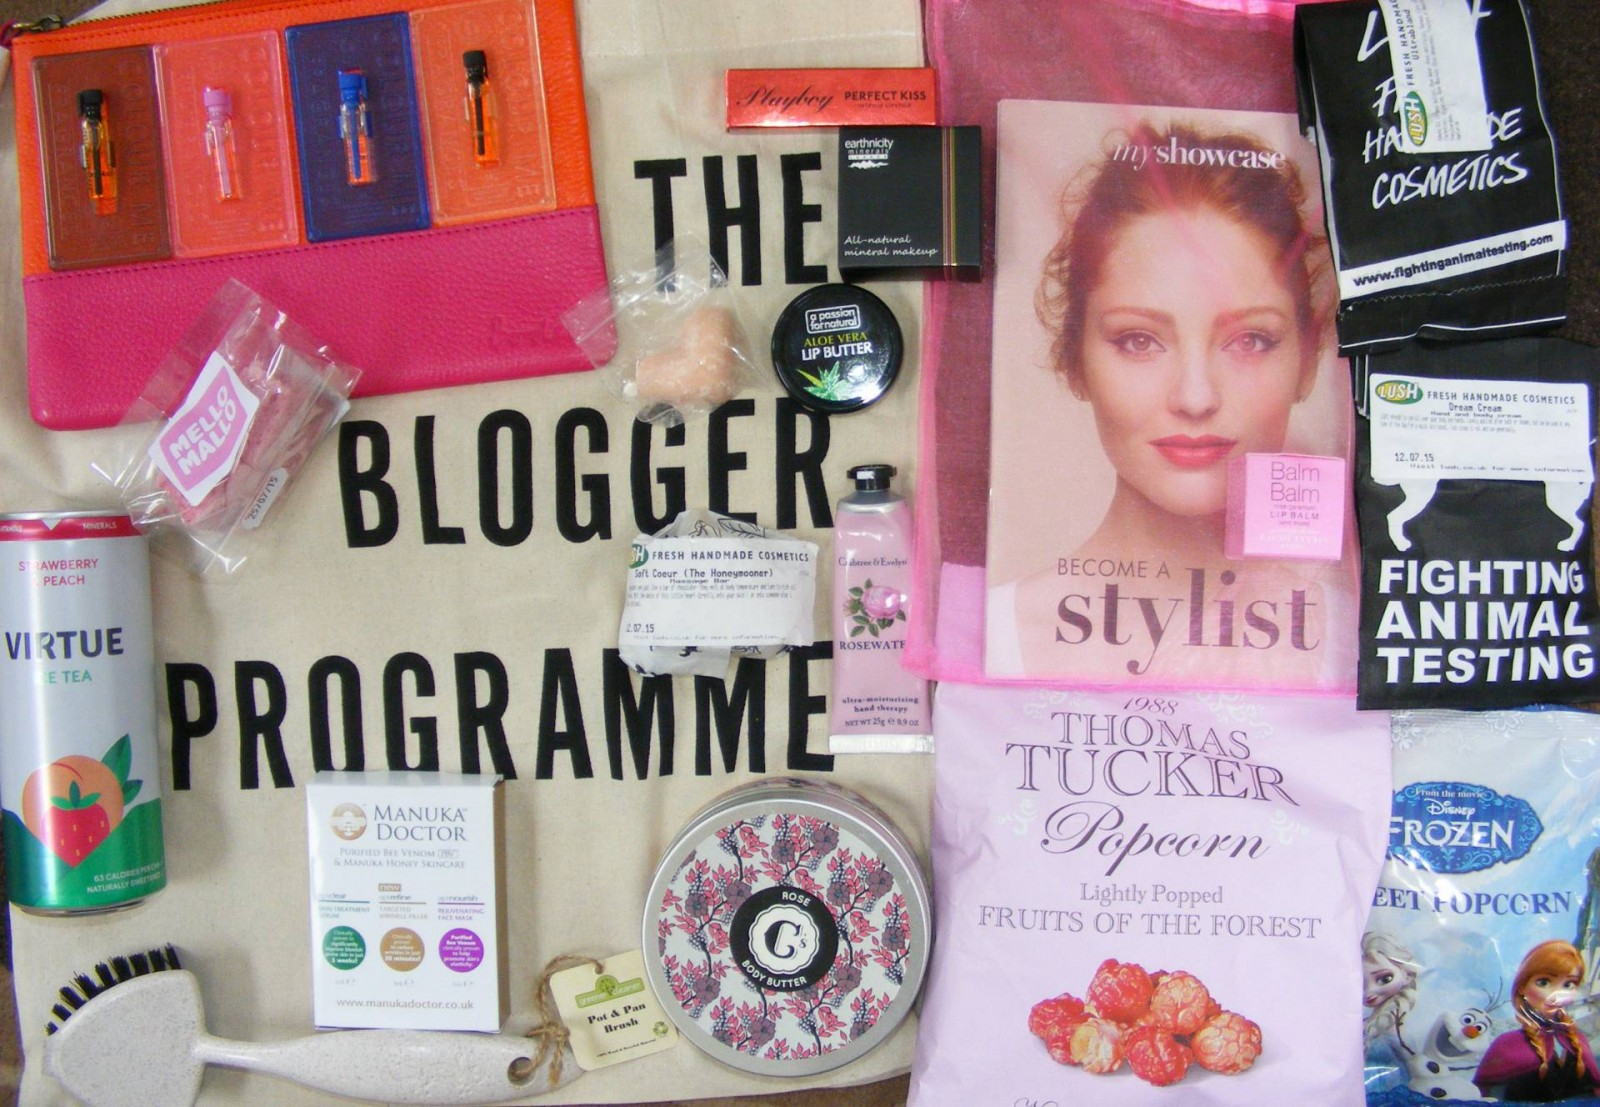 NW Bloggers Meet Up in Liverpool NW bloggers goody bag